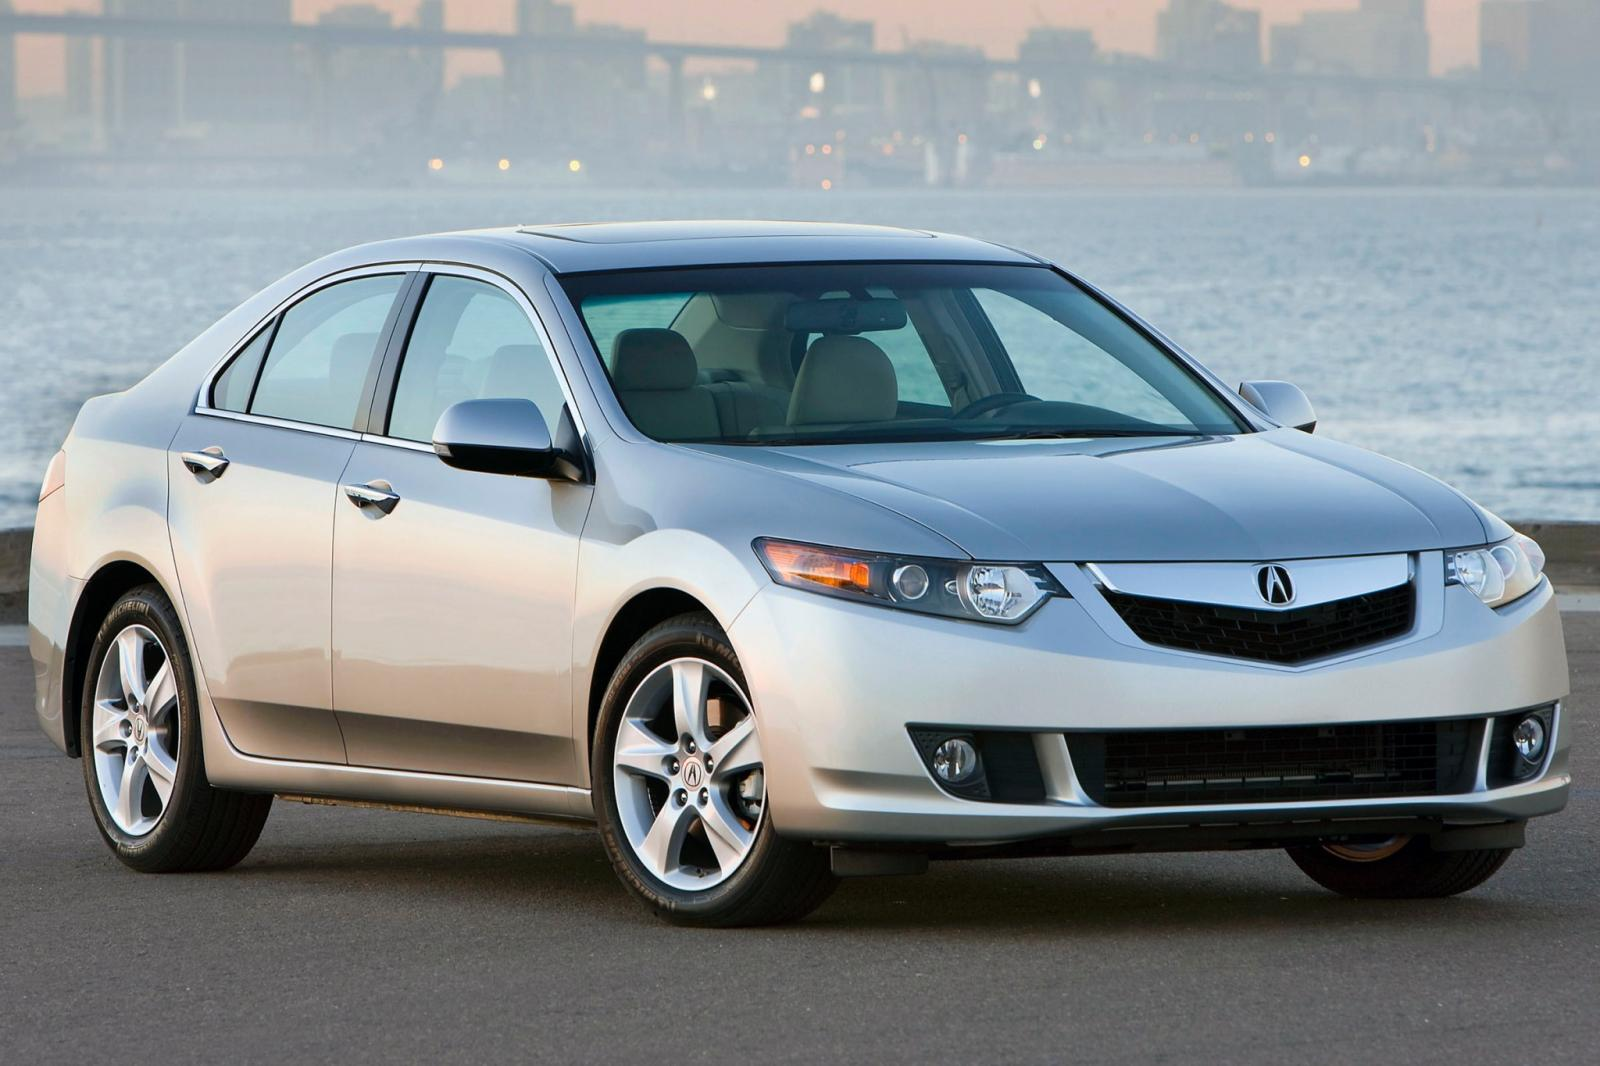 2010 acura tsx information and photos zombiedrive. Black Bedroom Furniture Sets. Home Design Ideas